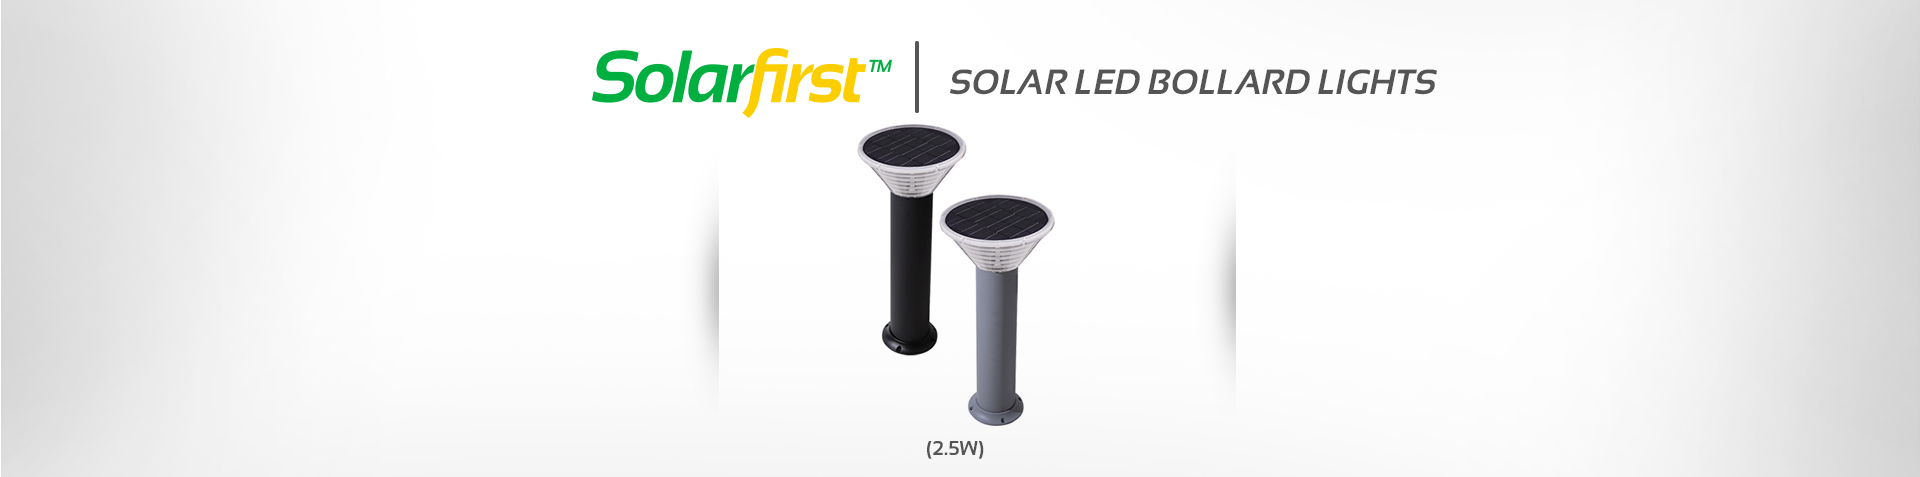 Solar-LED-Bollard-Lights